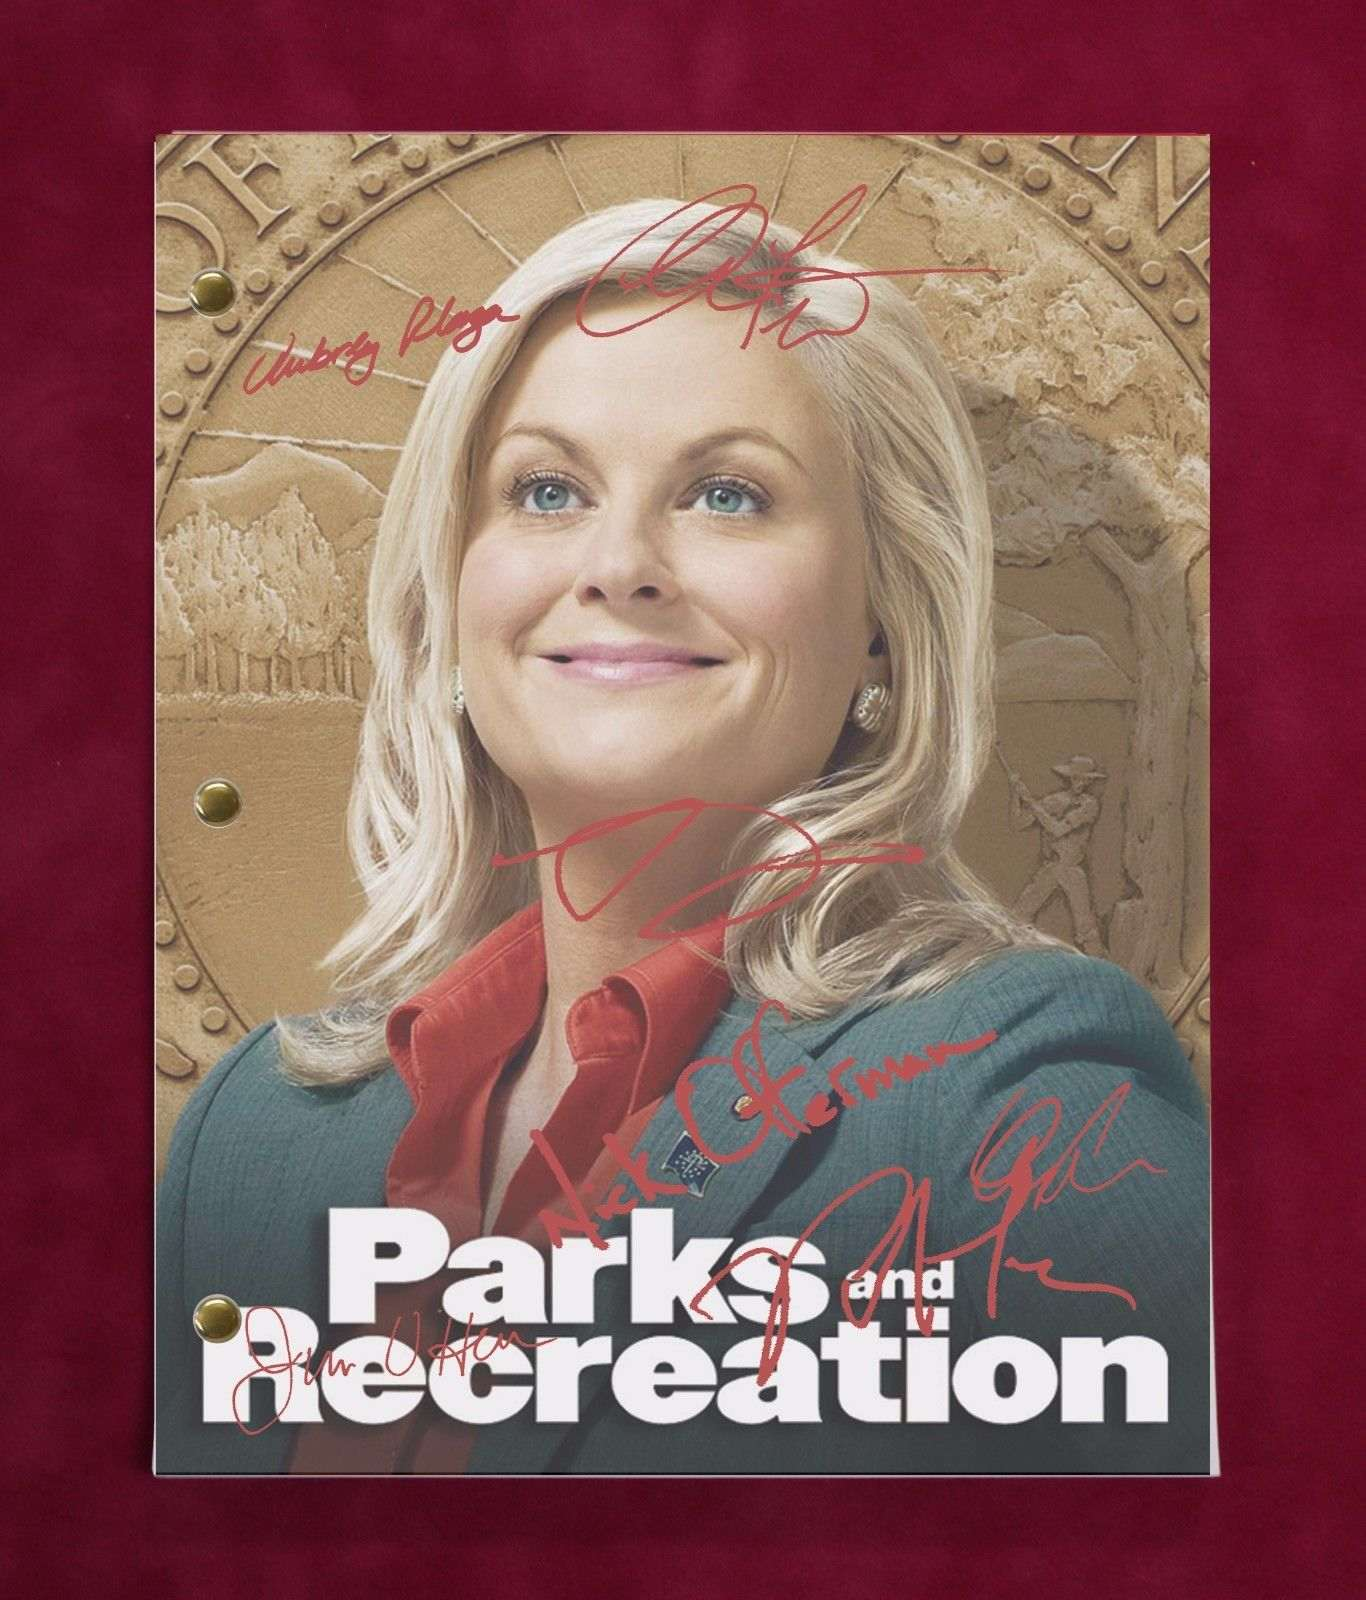 Parks And Rec Tv Script W/ Reproduction Signatures Poehler, Oheir, Offerman C3